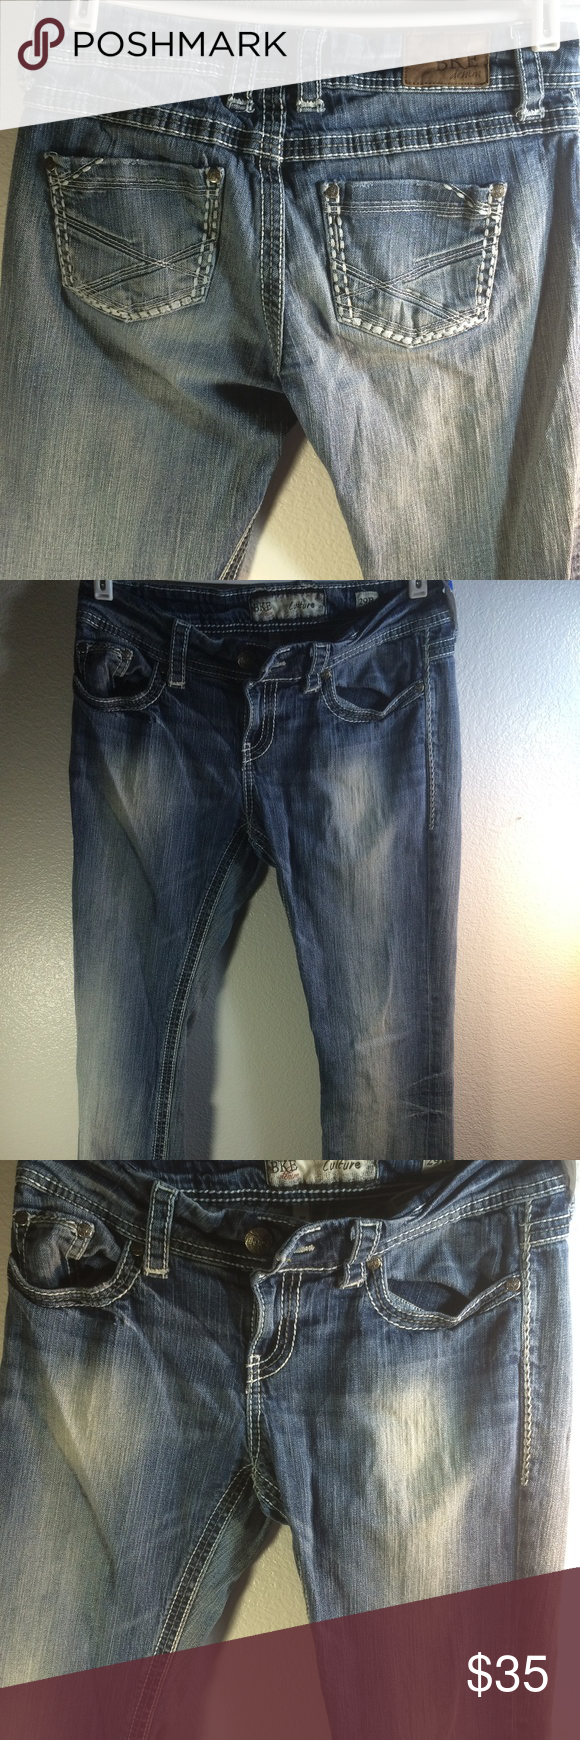 """BKE ABK612 Culture Denim 